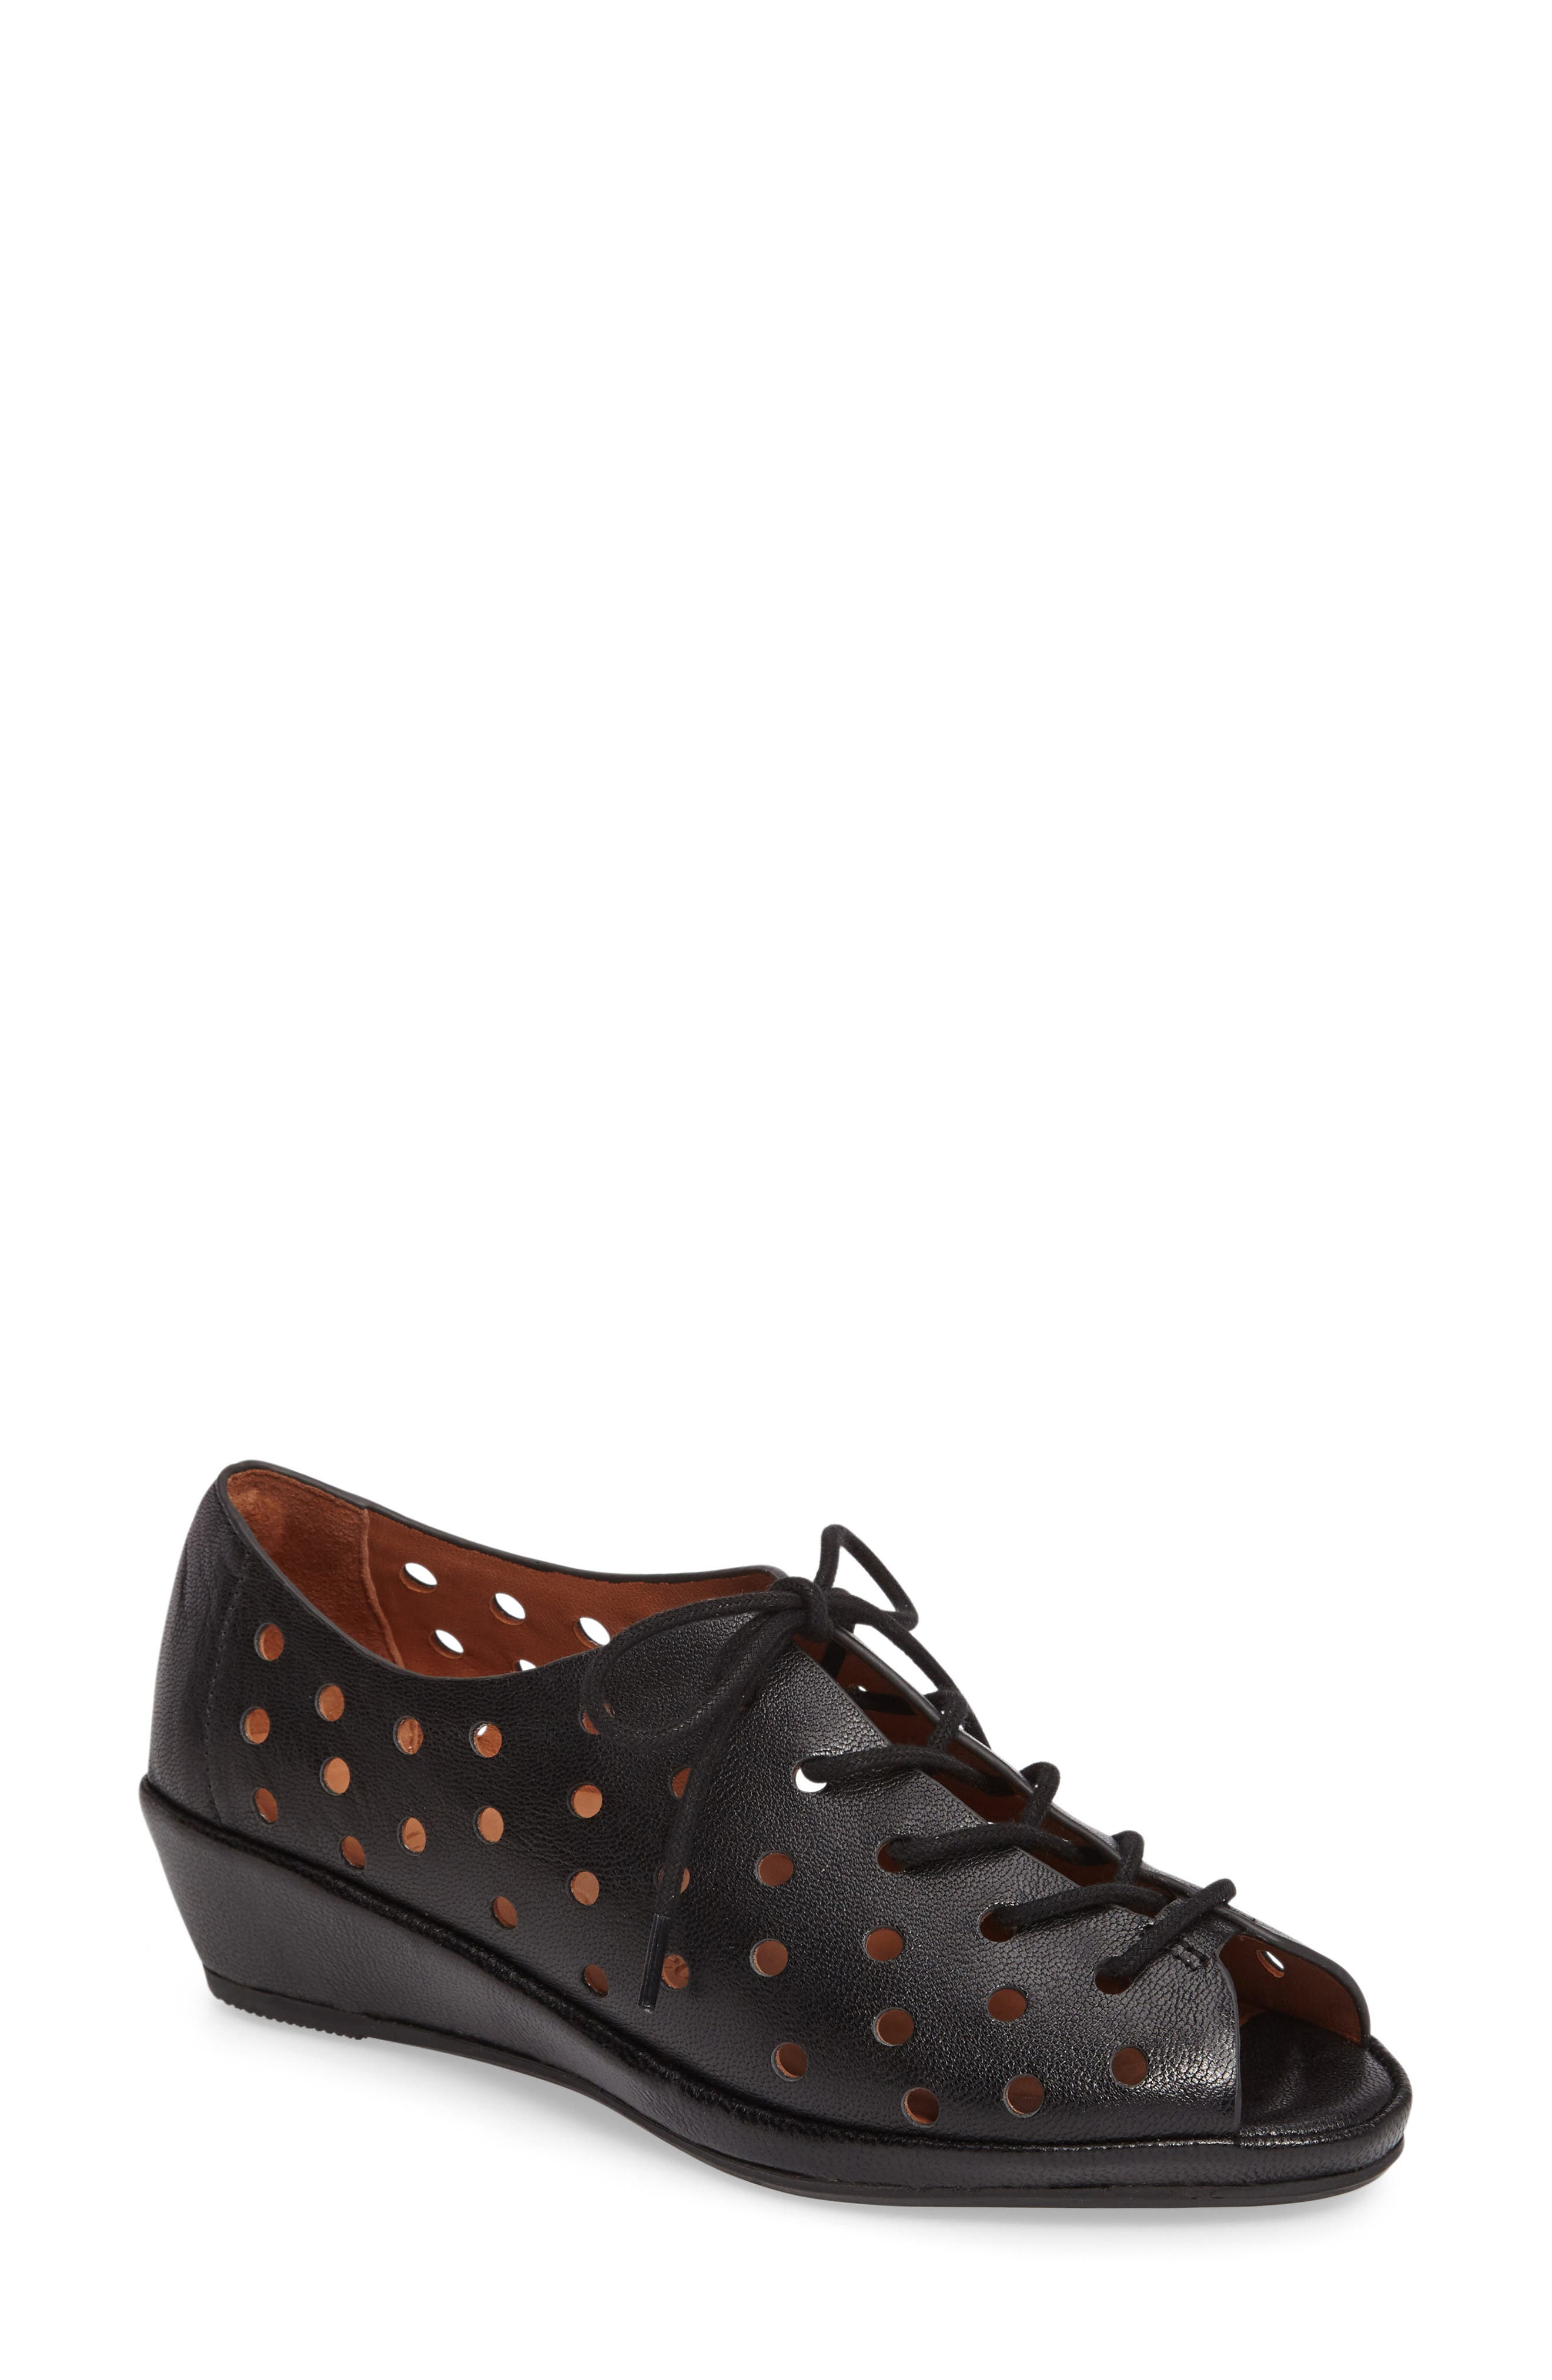 Boccoo Perforated Lace-Up Oxford,                         Main,                         color, 001